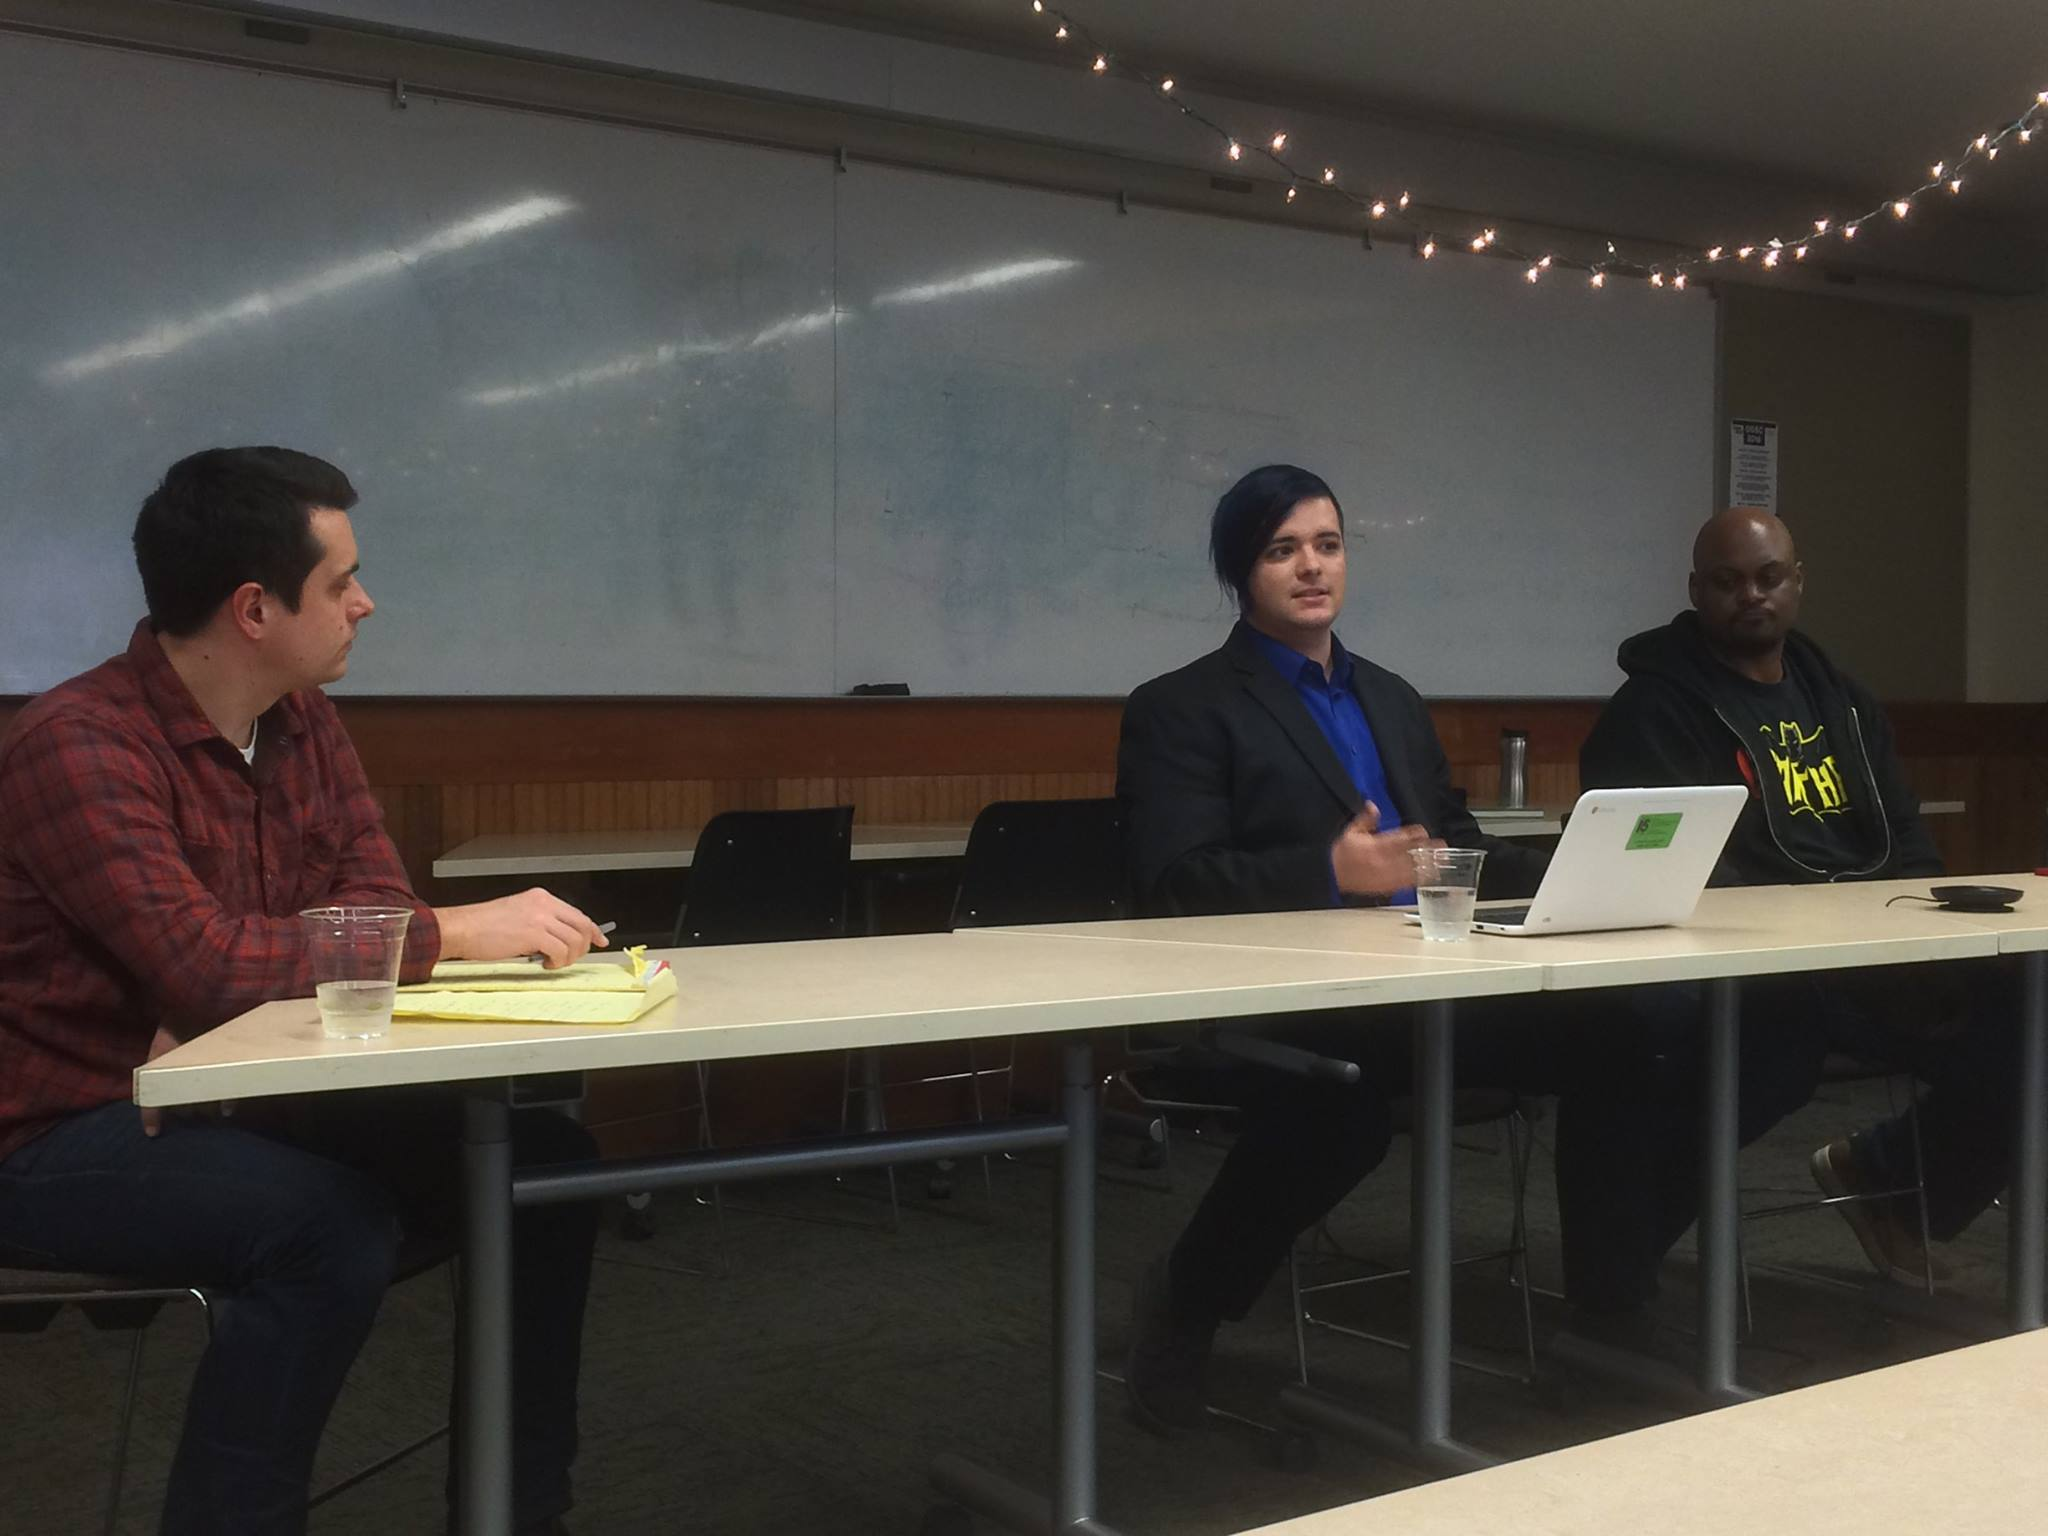 Steering Committee member Christian Erichsen, with Solon Scott and Kahlief Adams, during the 'Multimedia Surrounding Games' panel.